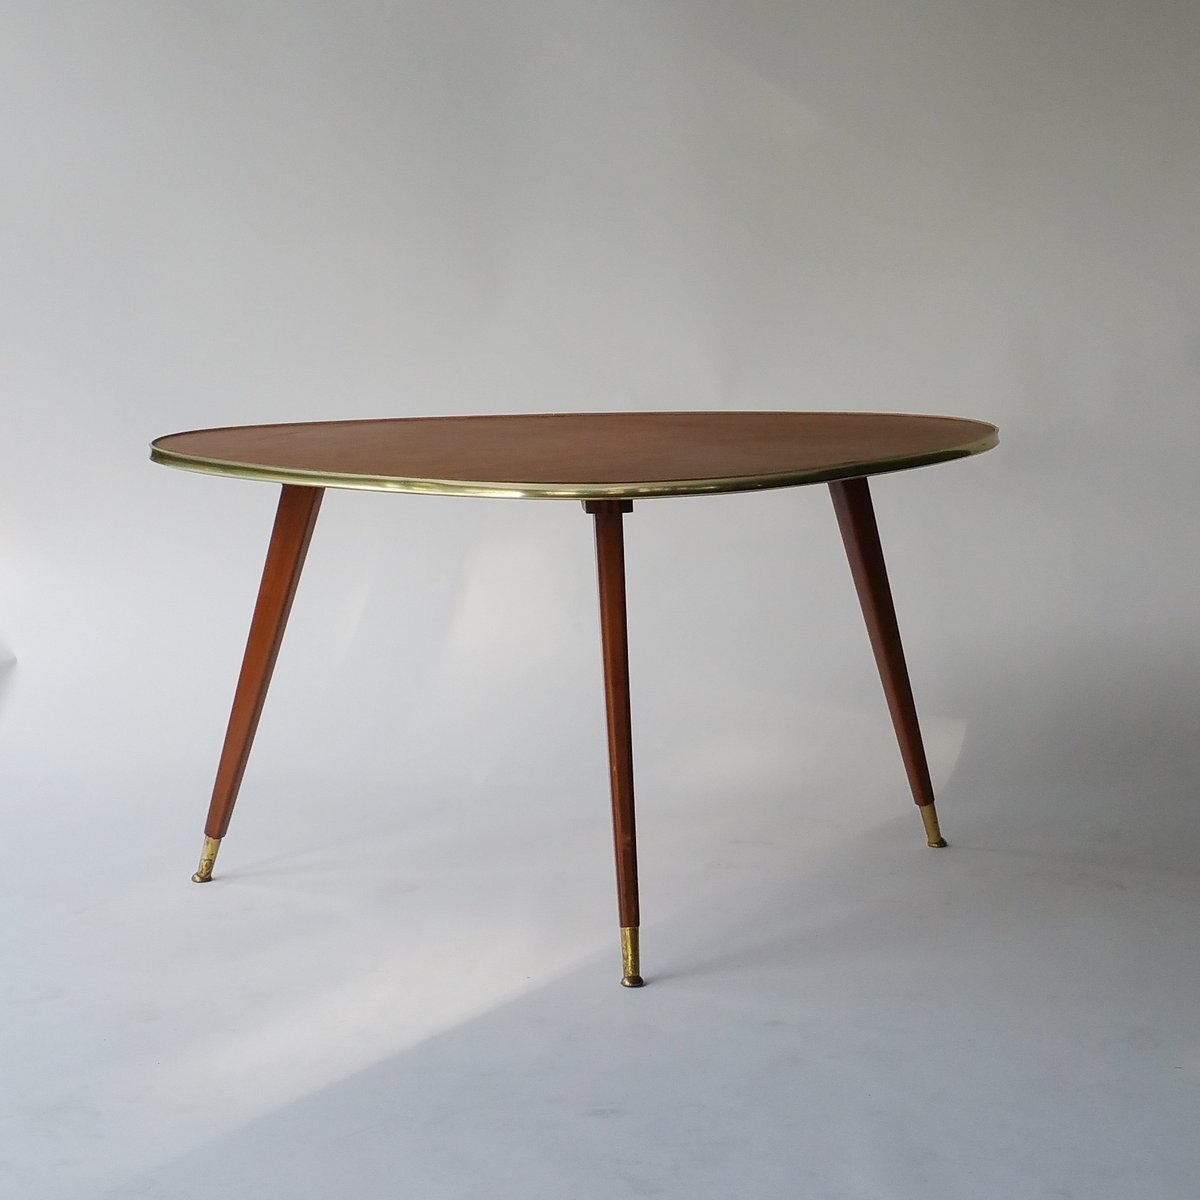 Coffee Table With Leather Top: Mid-Century Coffee Table With Leather Top, 1950s For Sale